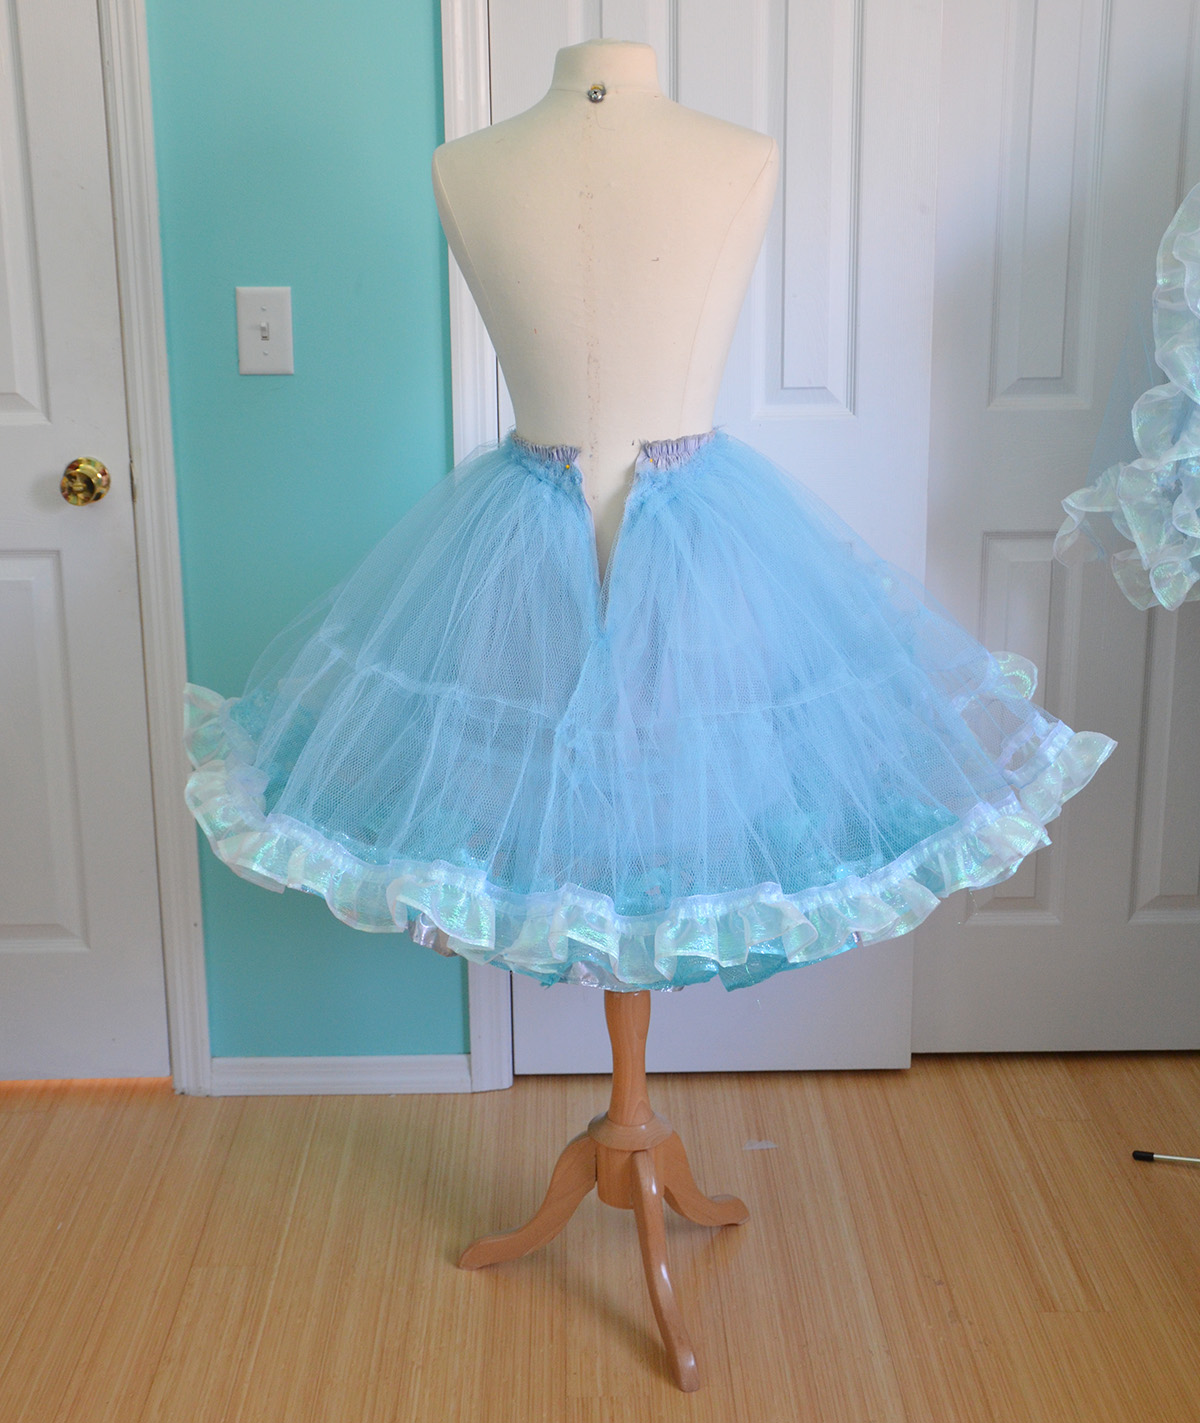 How to sew a petticoat 31